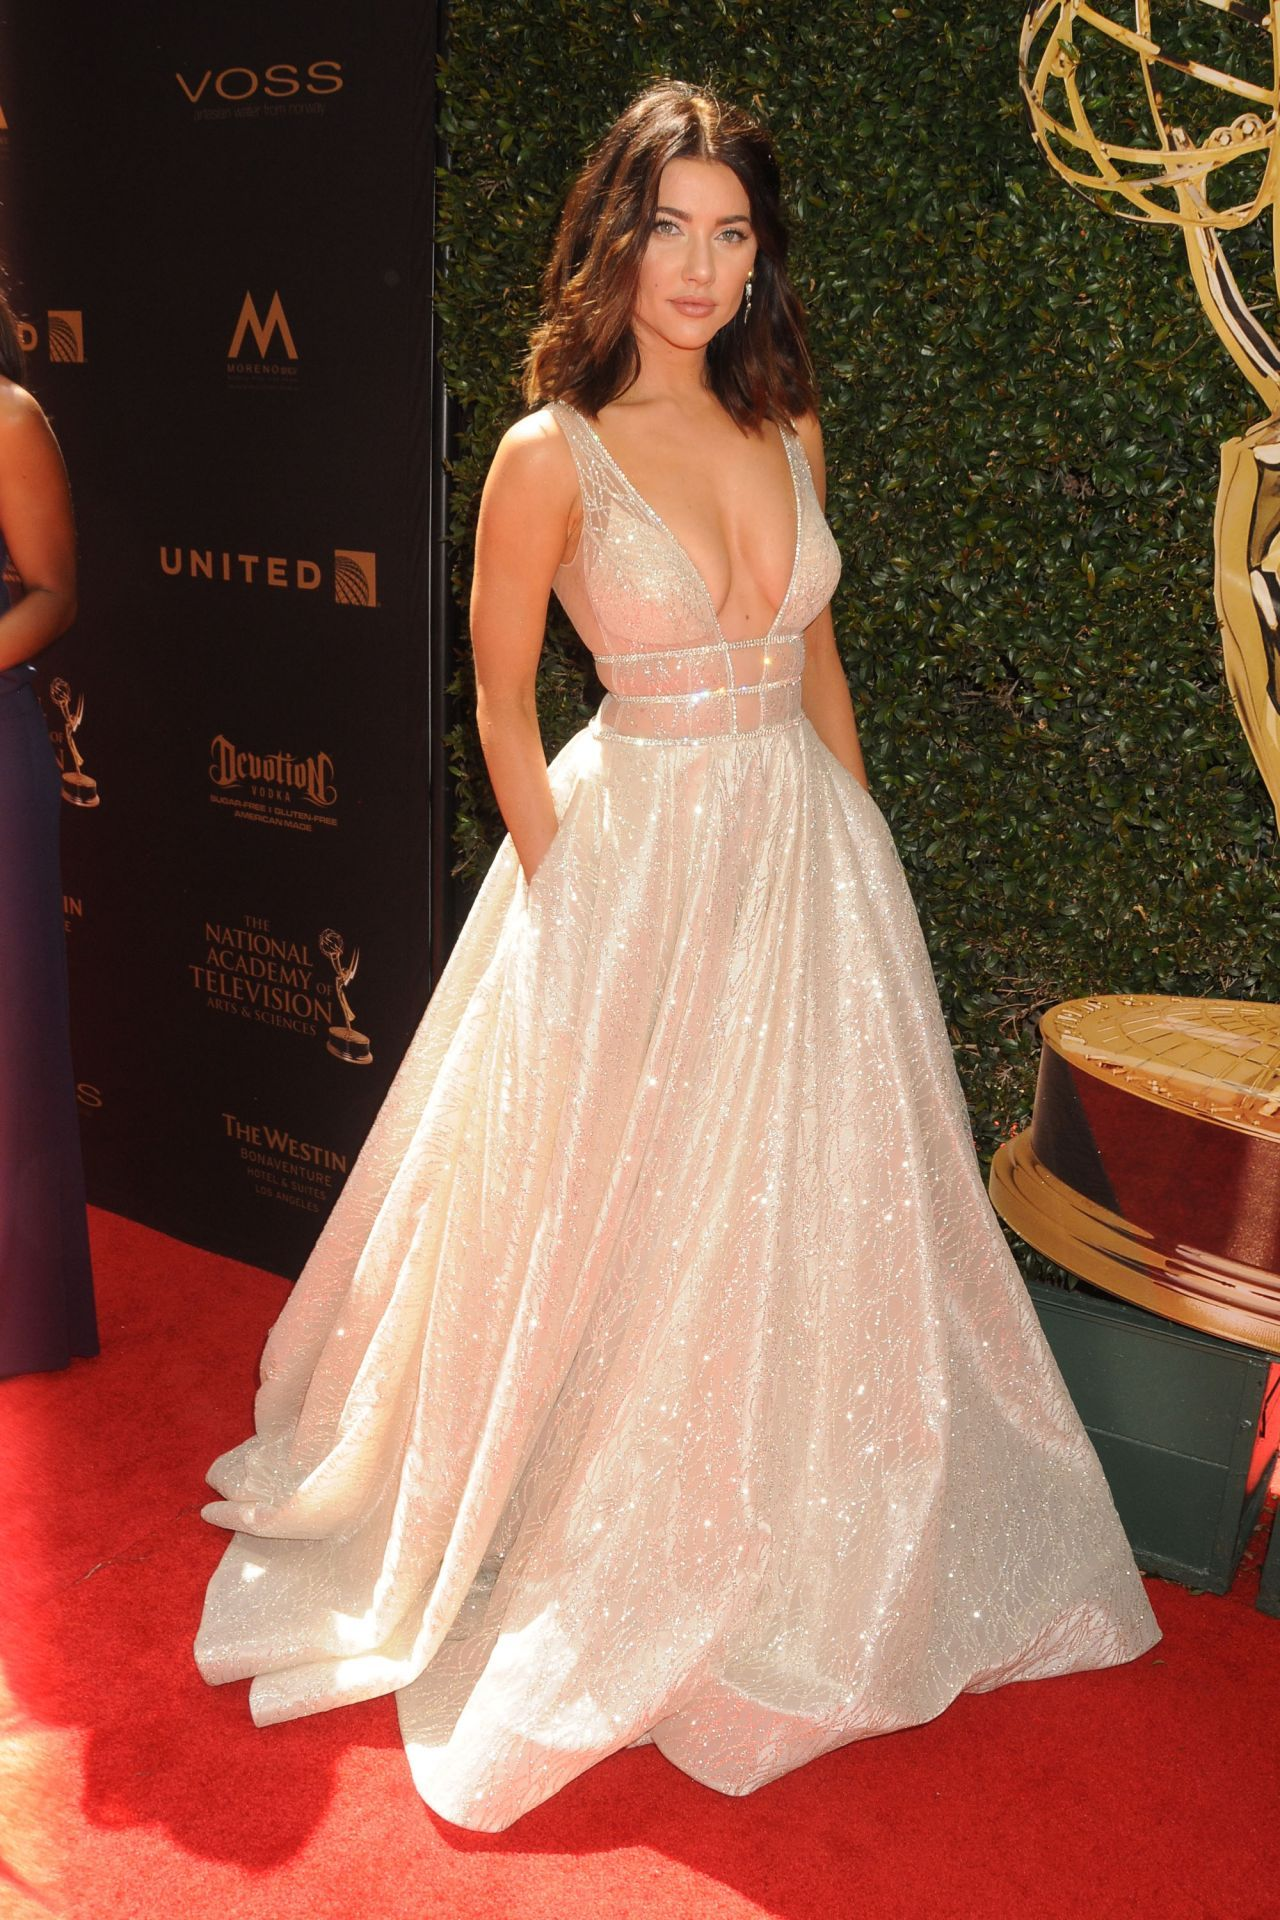 Pin by Belle Dame on cinderella time | Pinterest | Prom, Red carpet ...